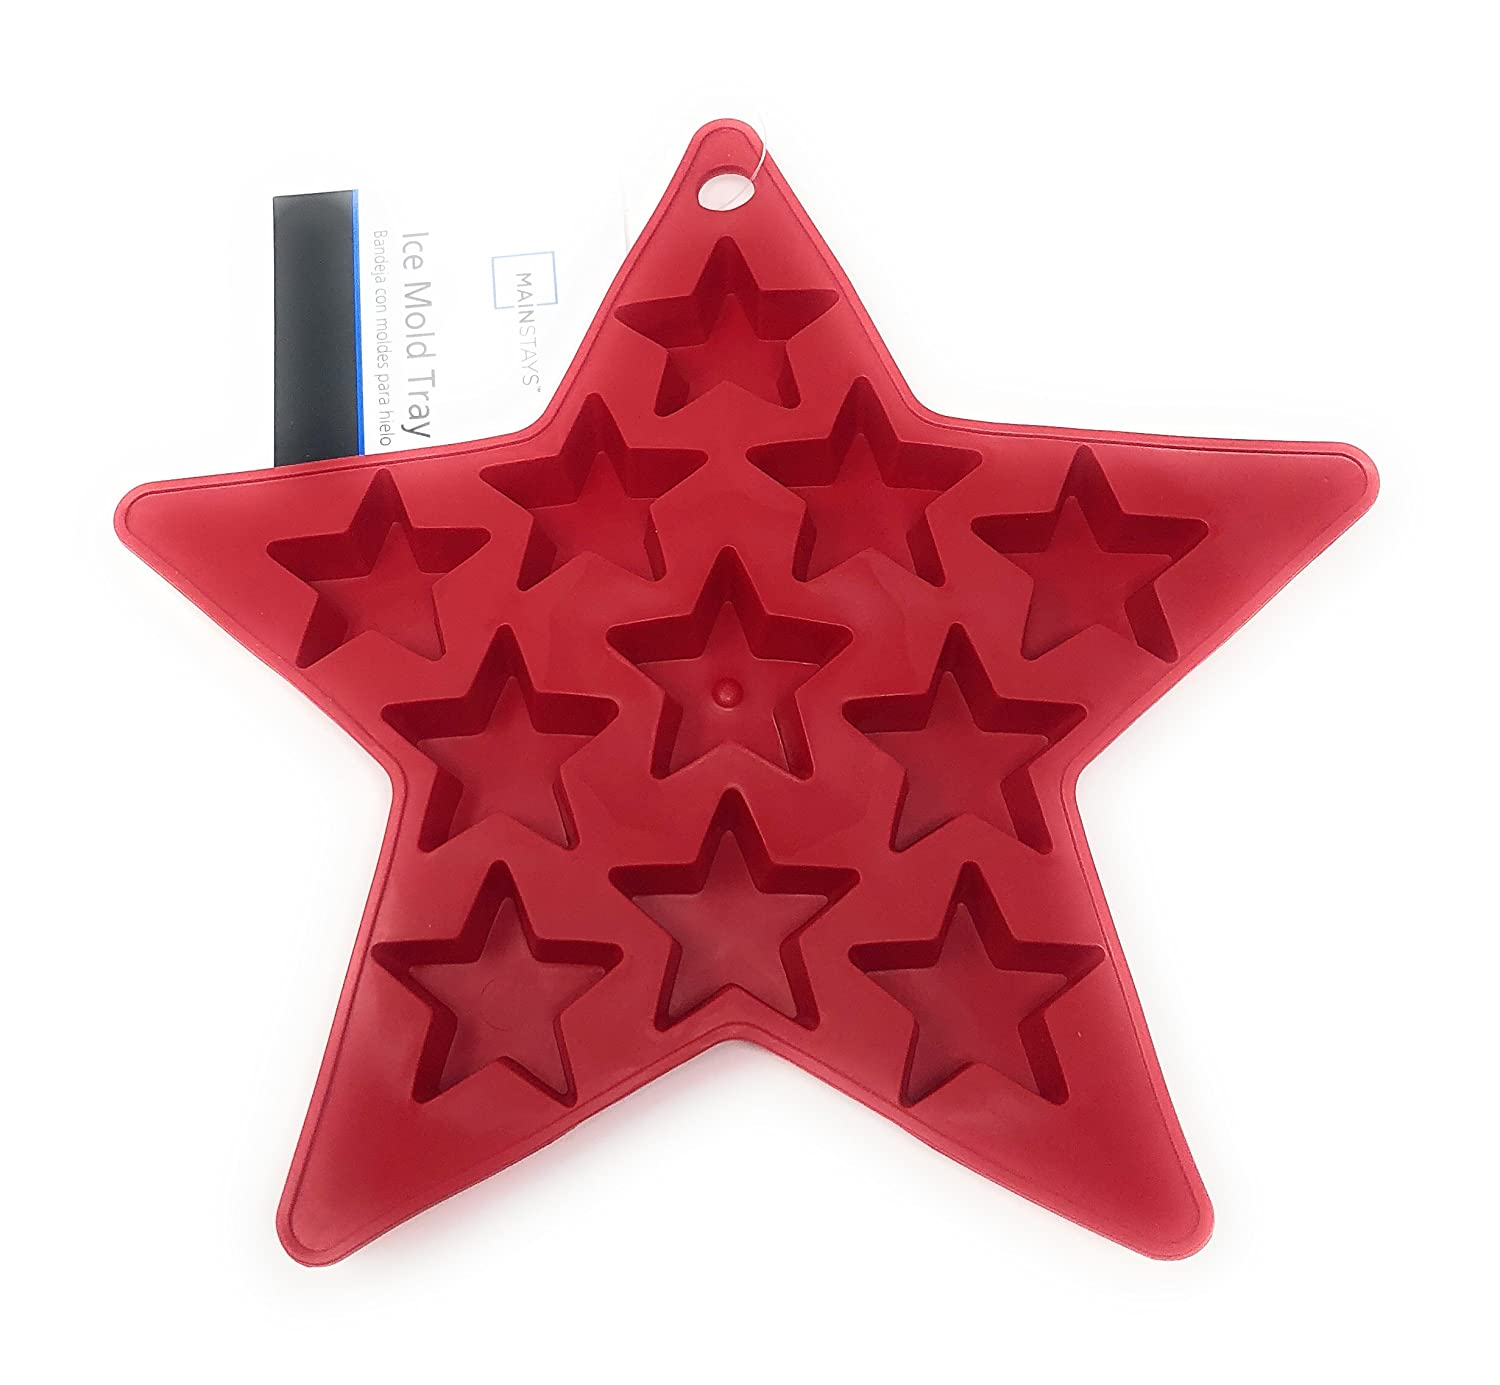 Amazon.com: Silcone Ice Cube Shaped Mold Tray (Just Red Star): Kitchen & Dining